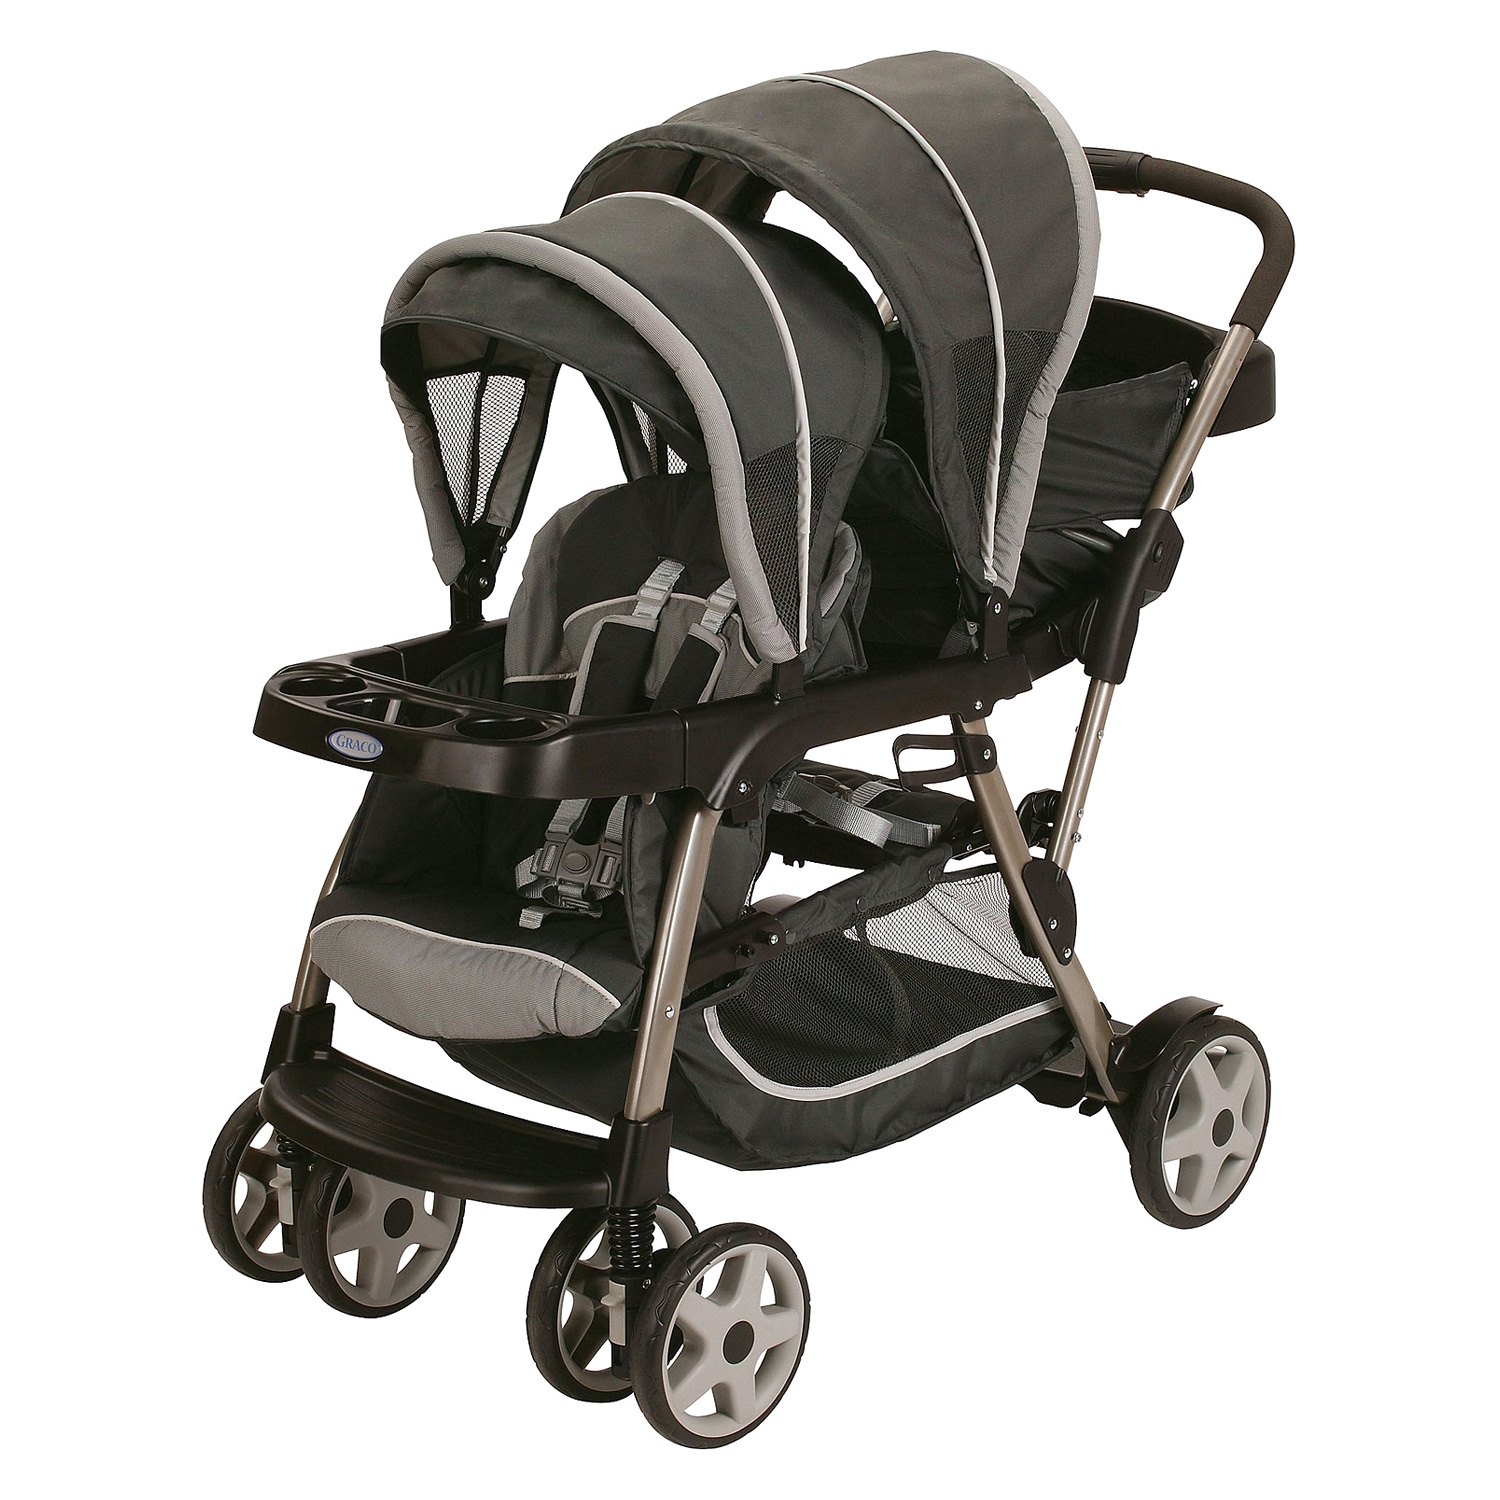 Graco Baby Ready2Grow™ Glacier Style Connect LX Stroller